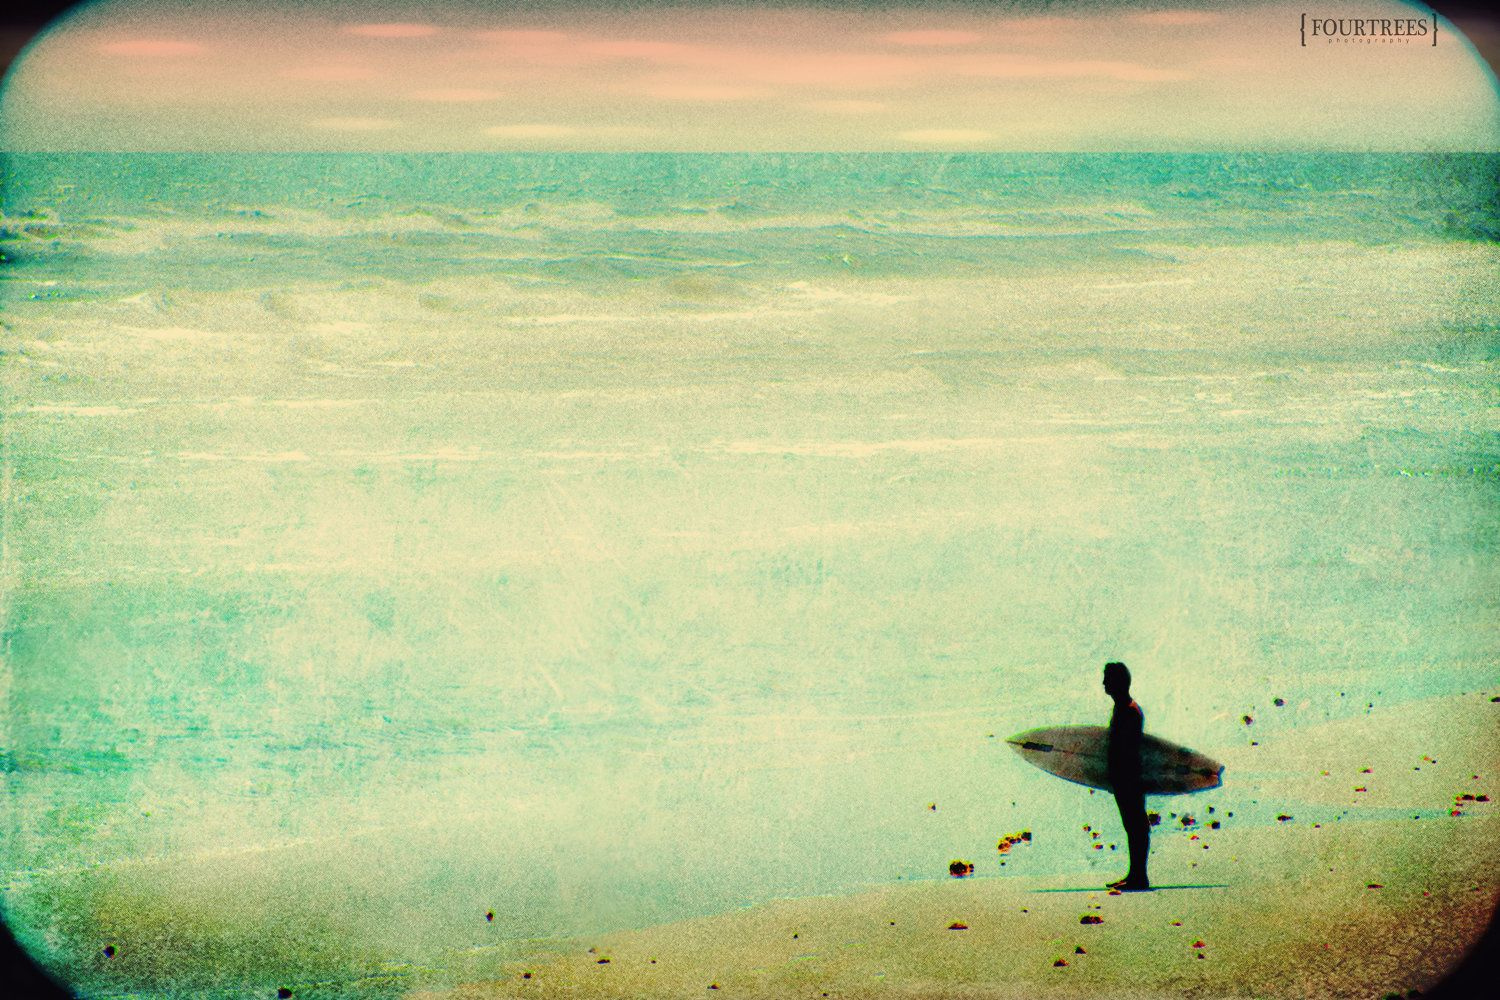 The Endless Summer - 8x12 Surfing beach surf photography print ...